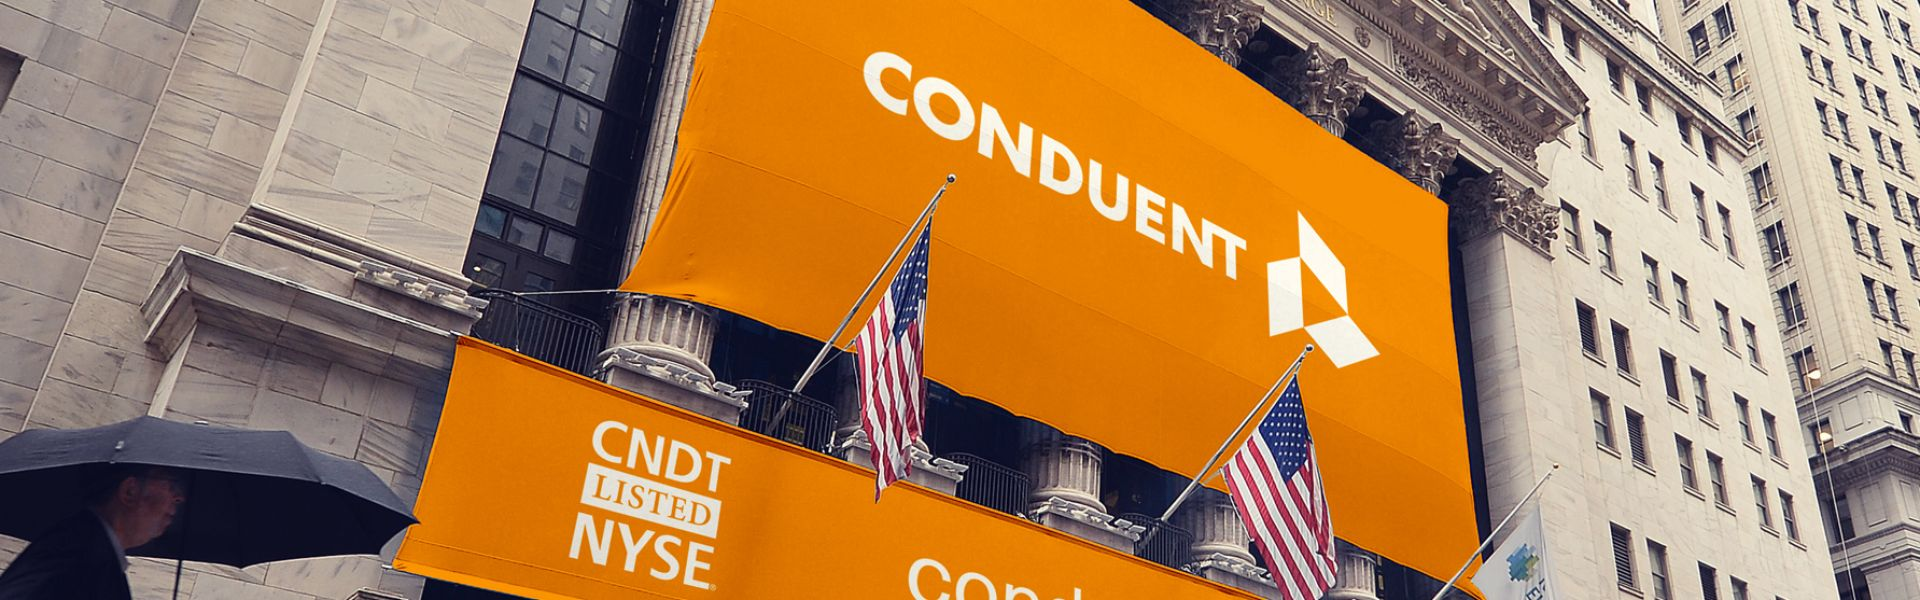 Conduent Completes Separation from Xerox, Launches as Business ...